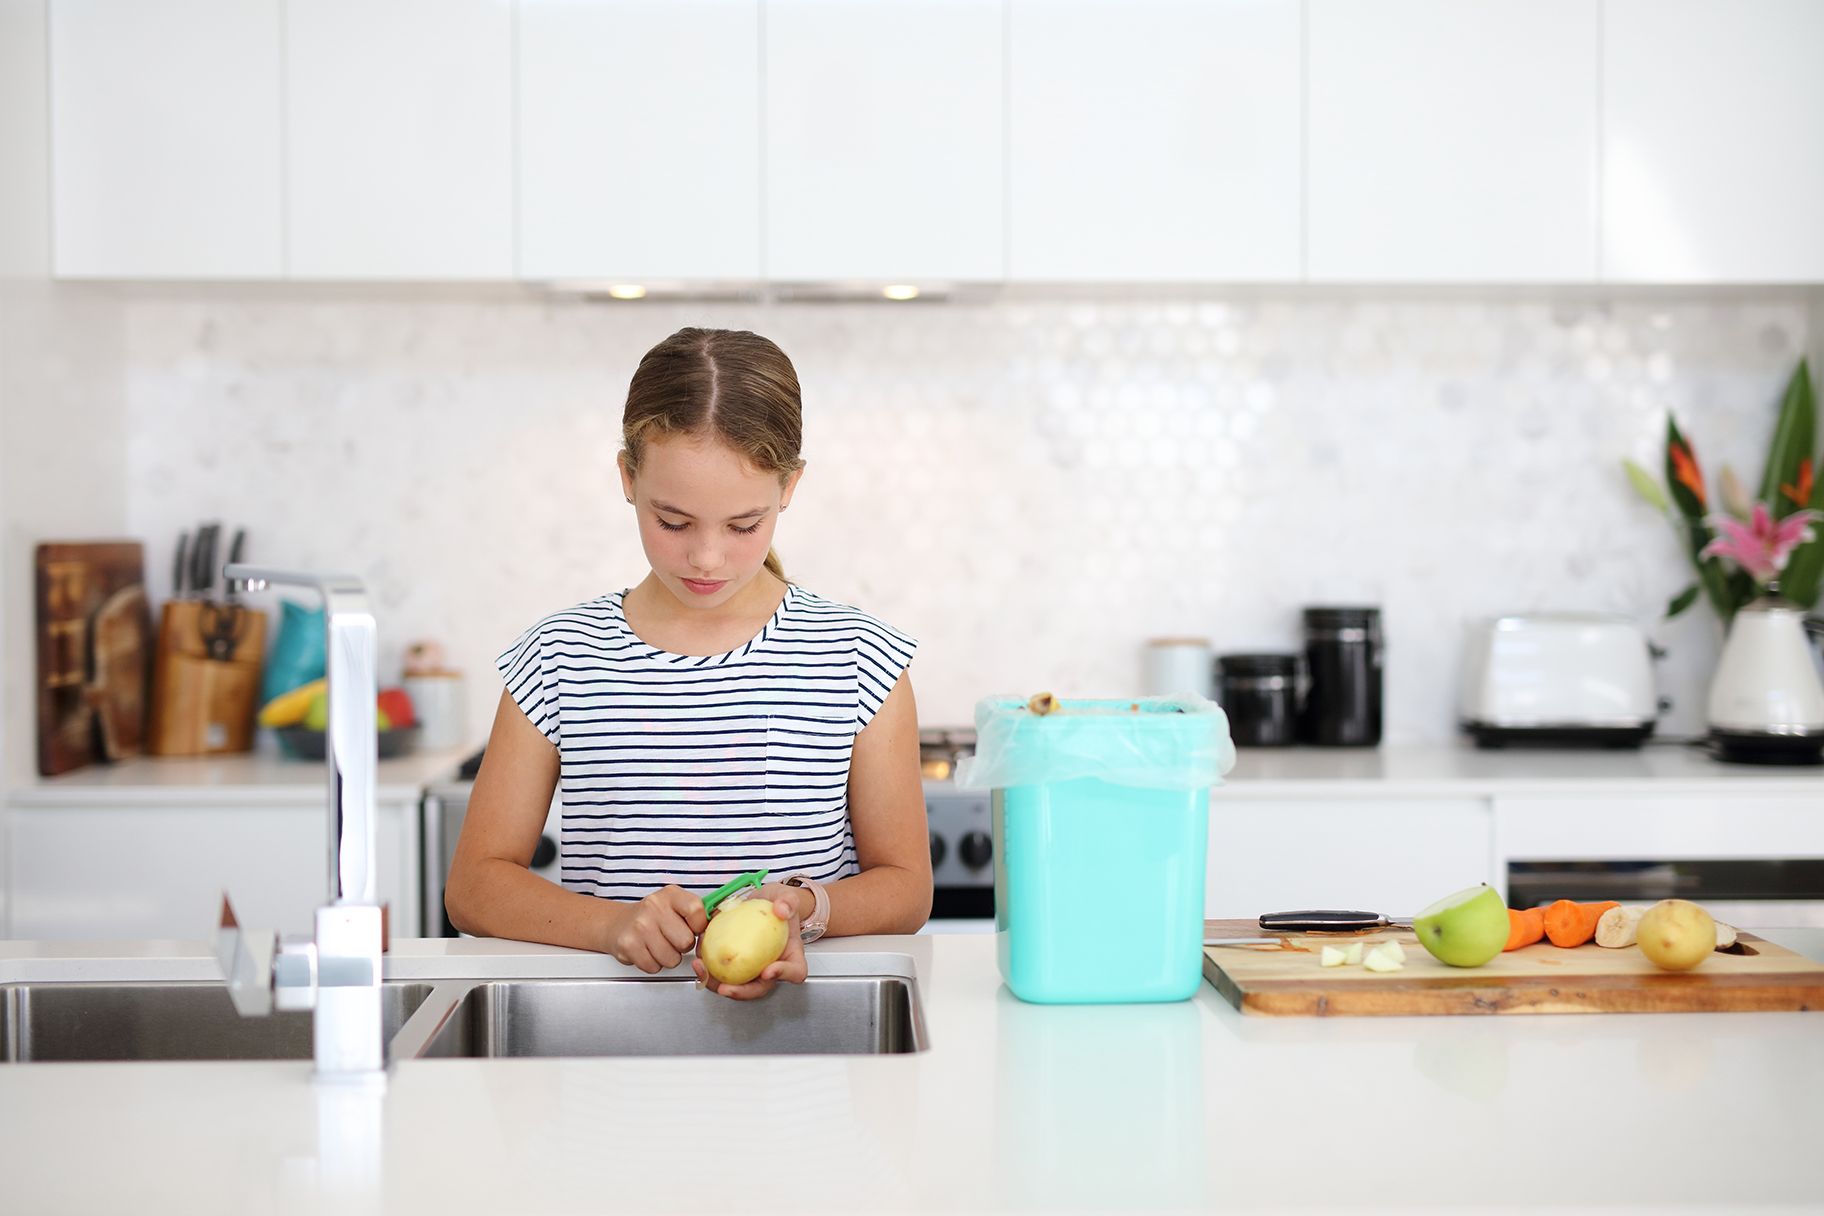 Girl peeling potato at kitchen sink with bin on bench beside her